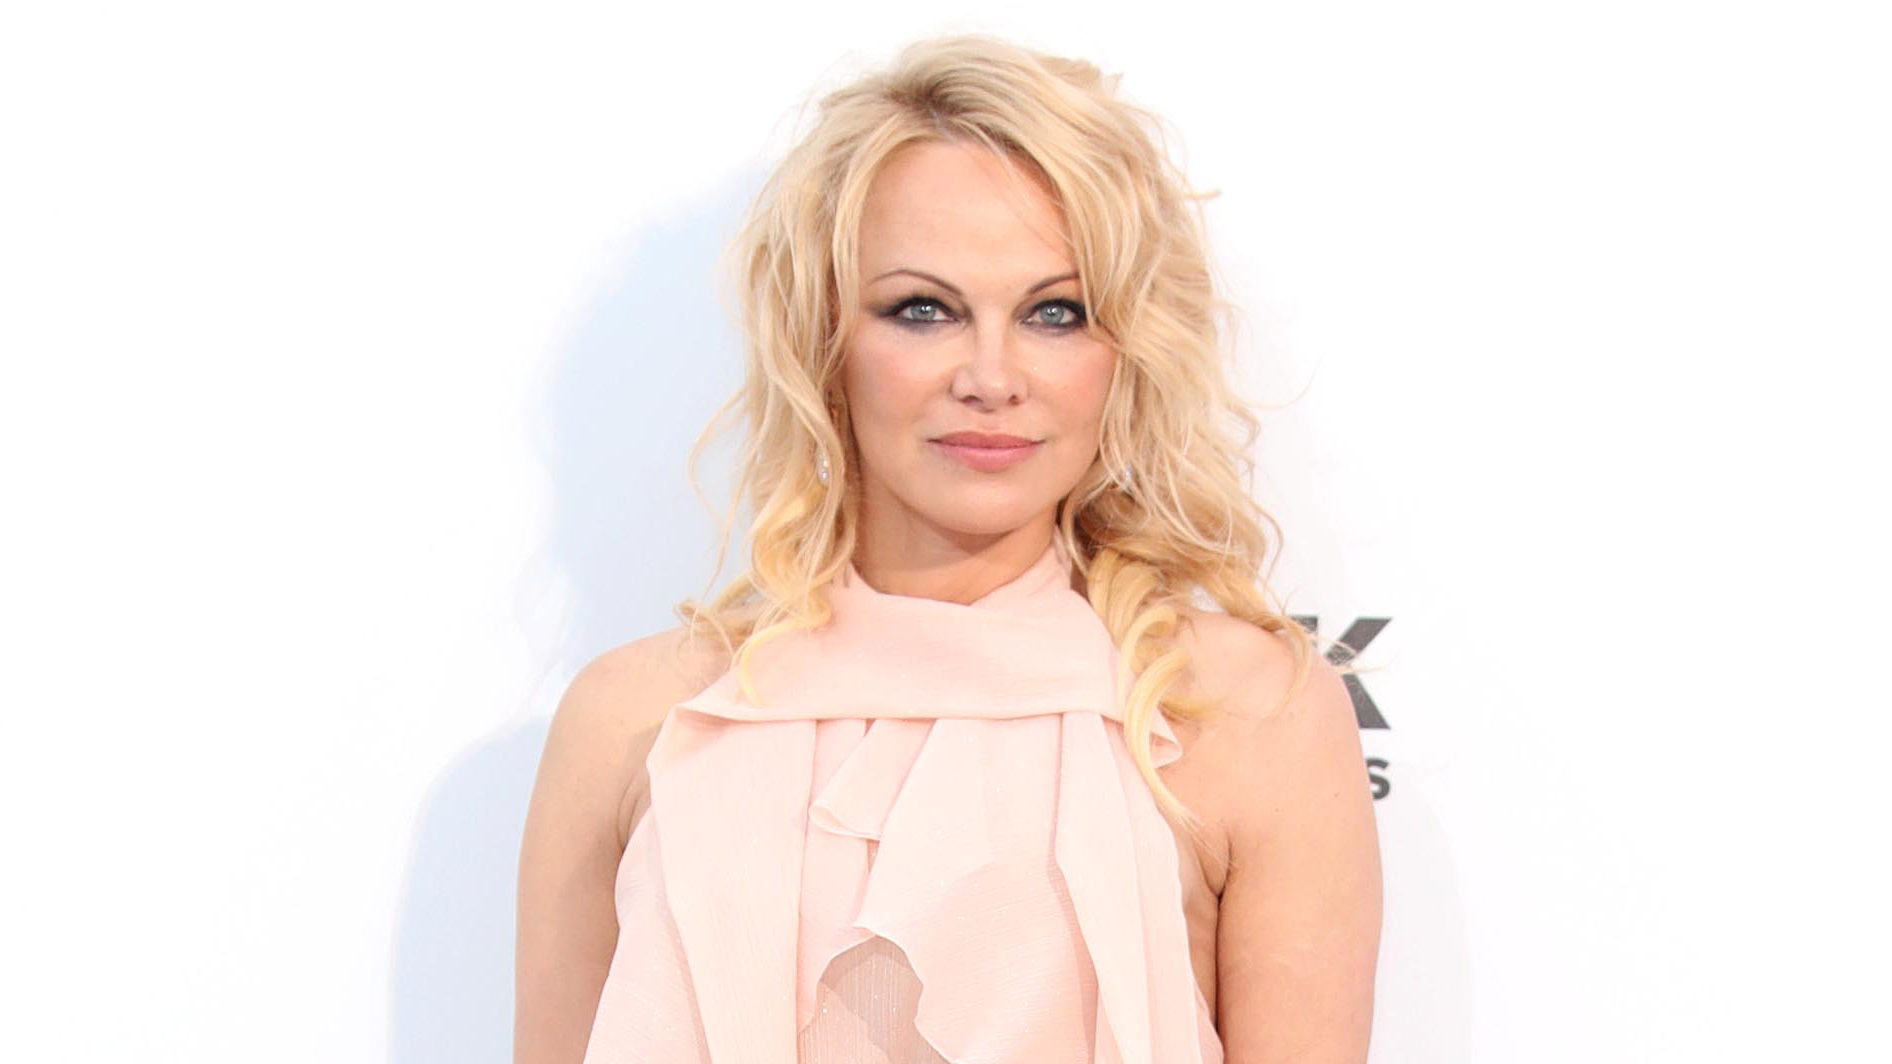 Pamela Anderson shares first photo with husband Jon Peters